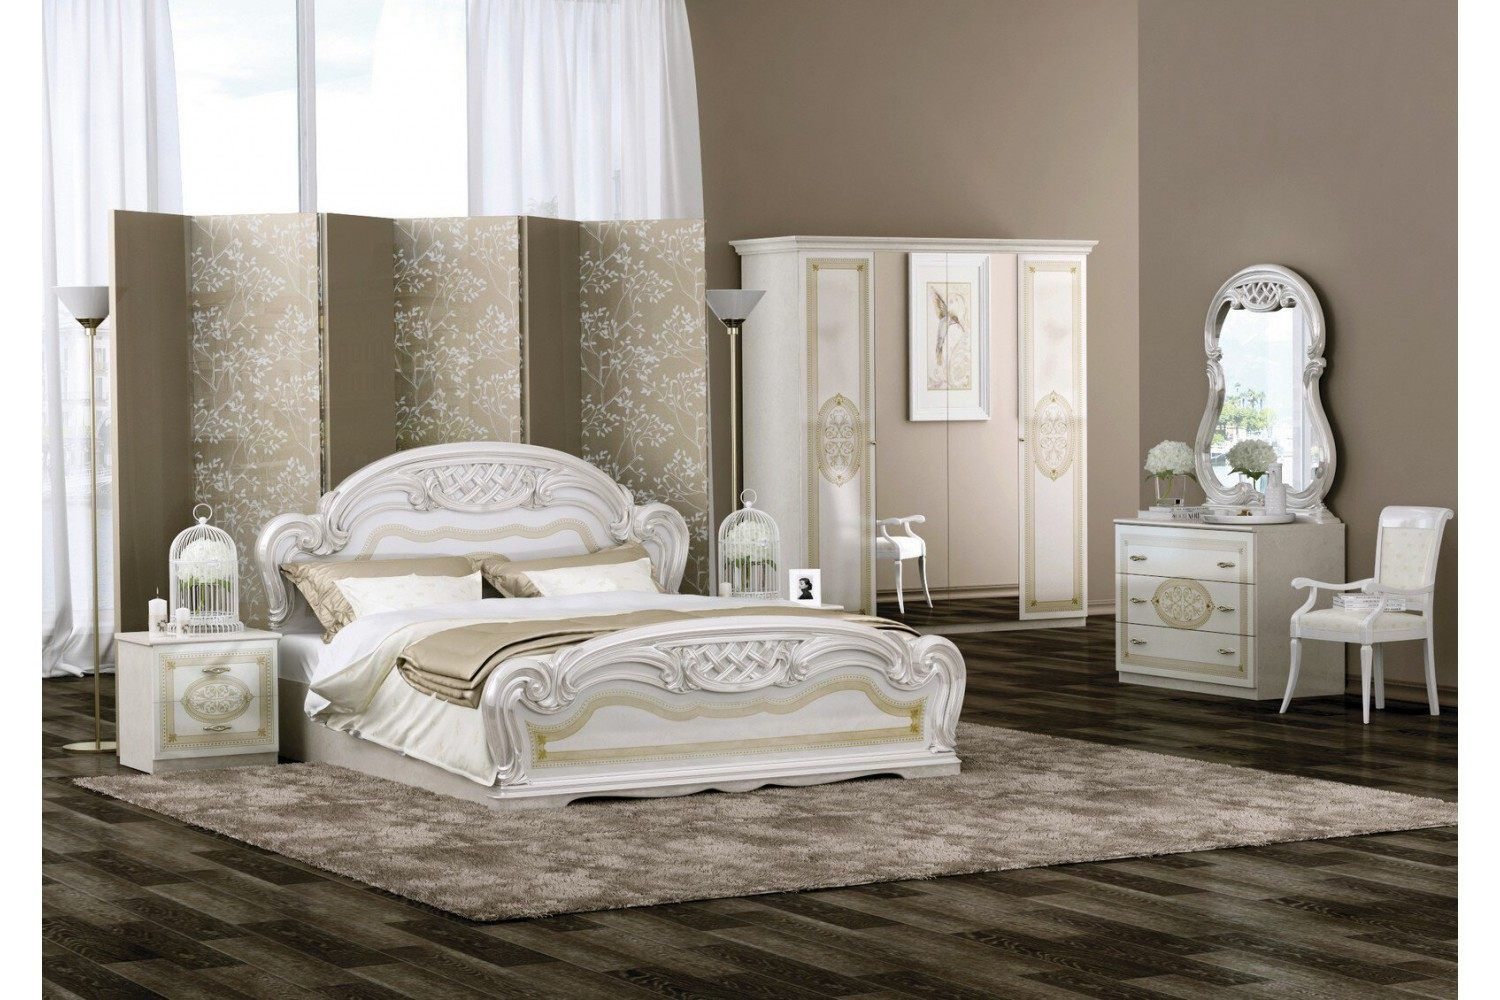 Schlafzimmer Barock Stil Lara In Beige 6teilig Italien Interdesign24 Schlafzimmer Grau Schlafzimmer Grau Bedroom Design Inspiration Home Bedroom Design